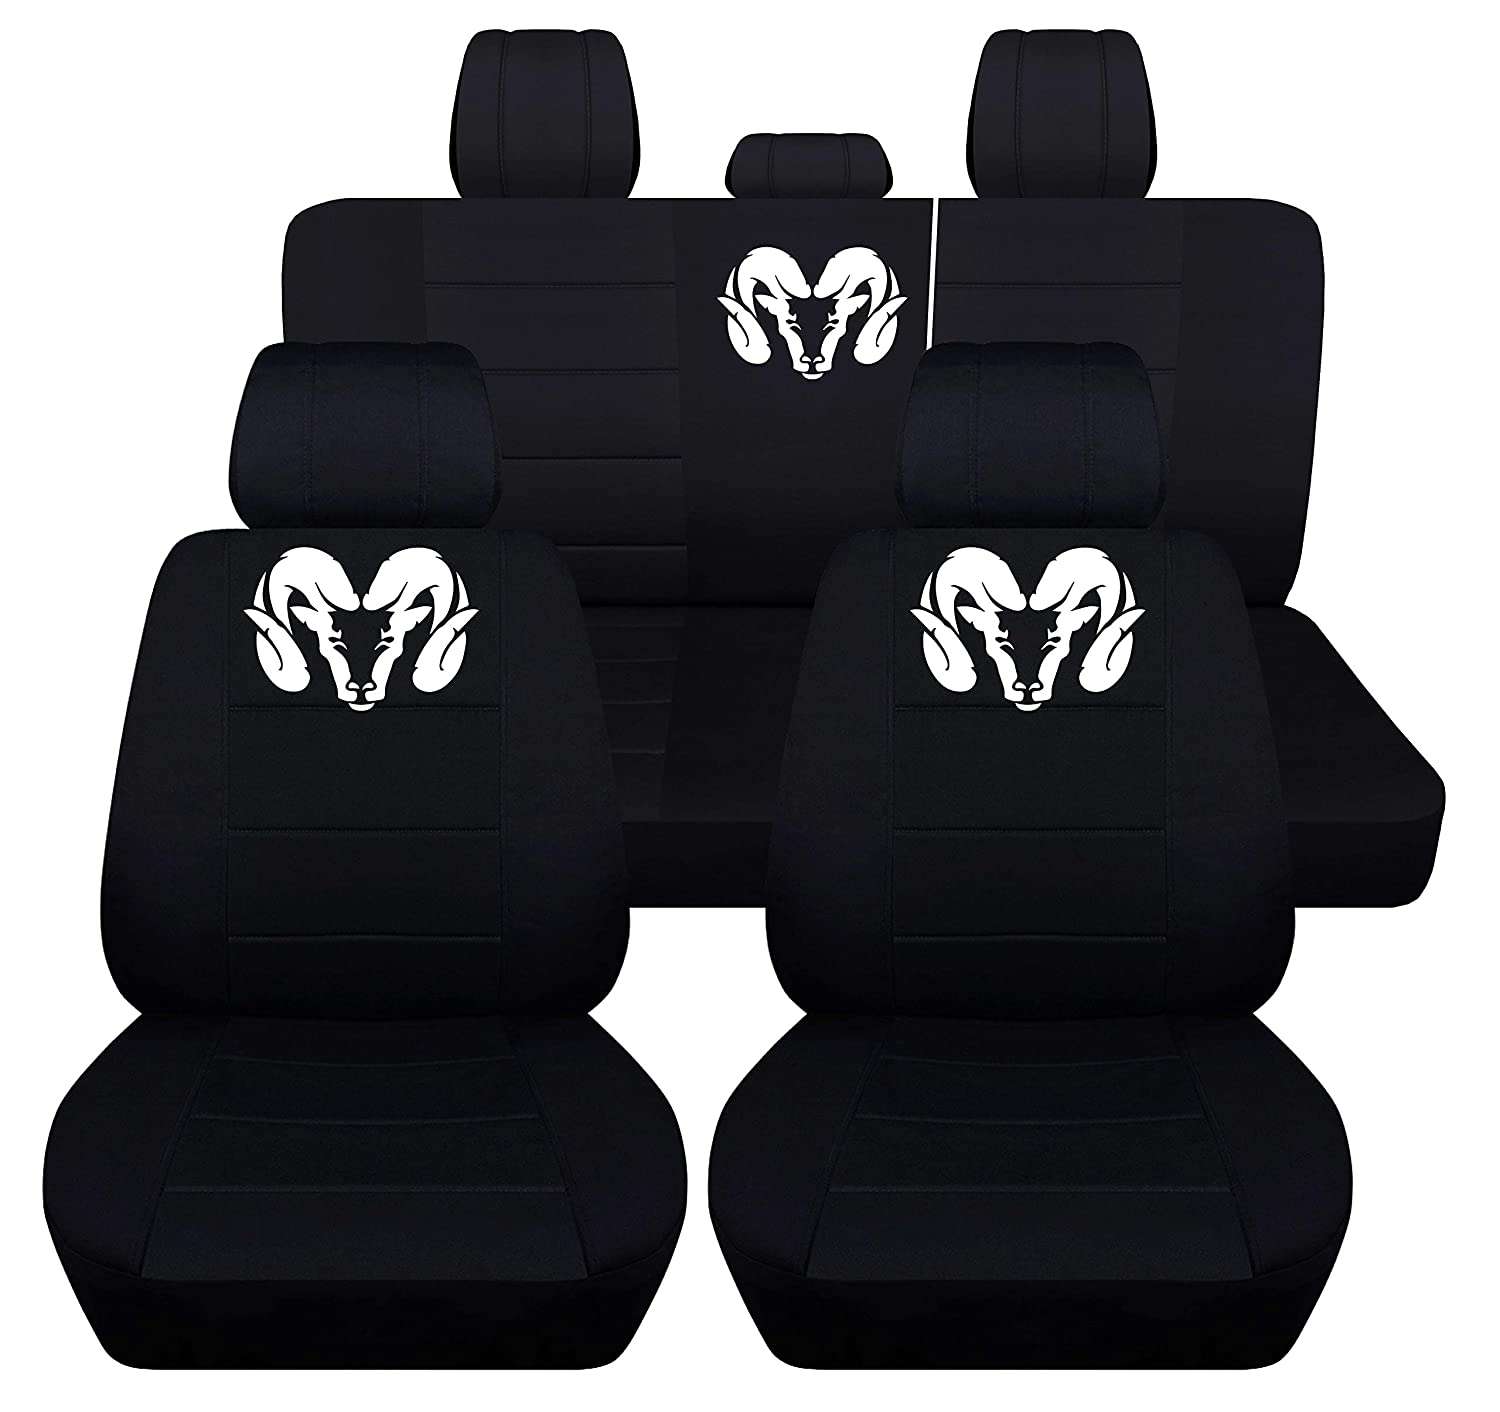 Fits 2012 to 2018 Dodge Ram Front and Rear Ram Seat Covers 22 Color Options (40-60 Rear with Armest, Black Charcoal) Designcovers